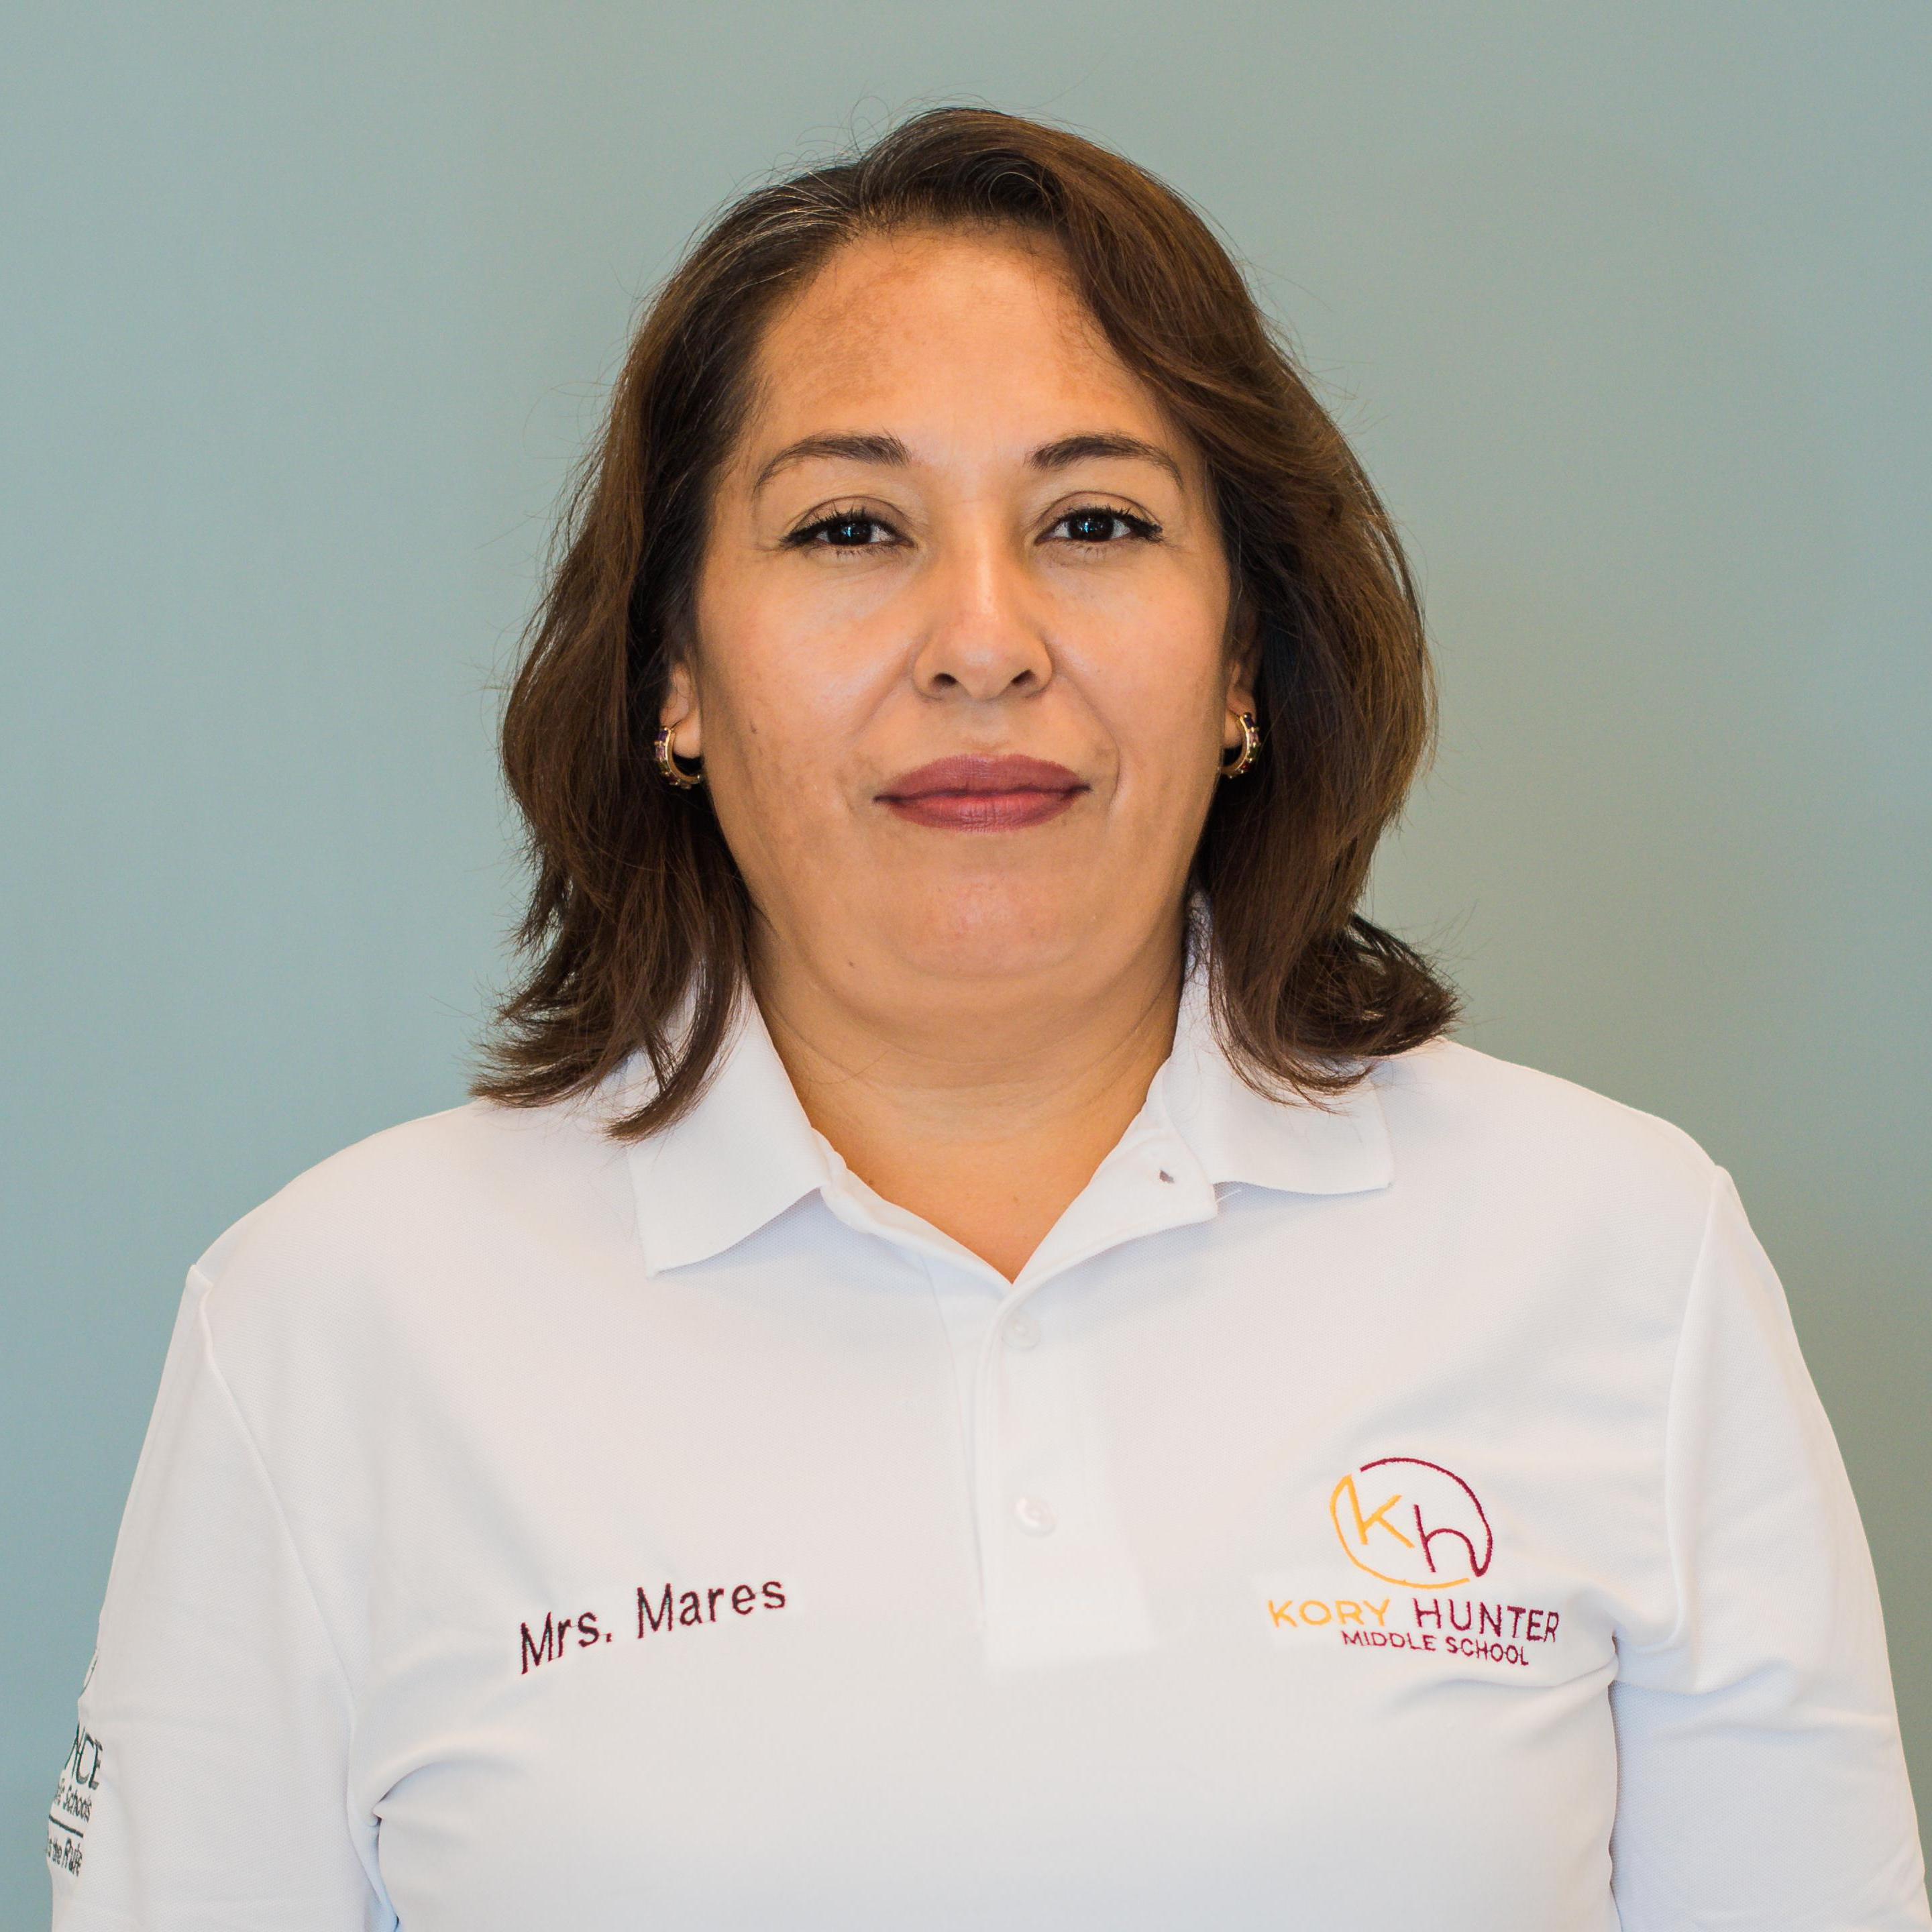 Maria Hernandez de Mares's Profile Photo